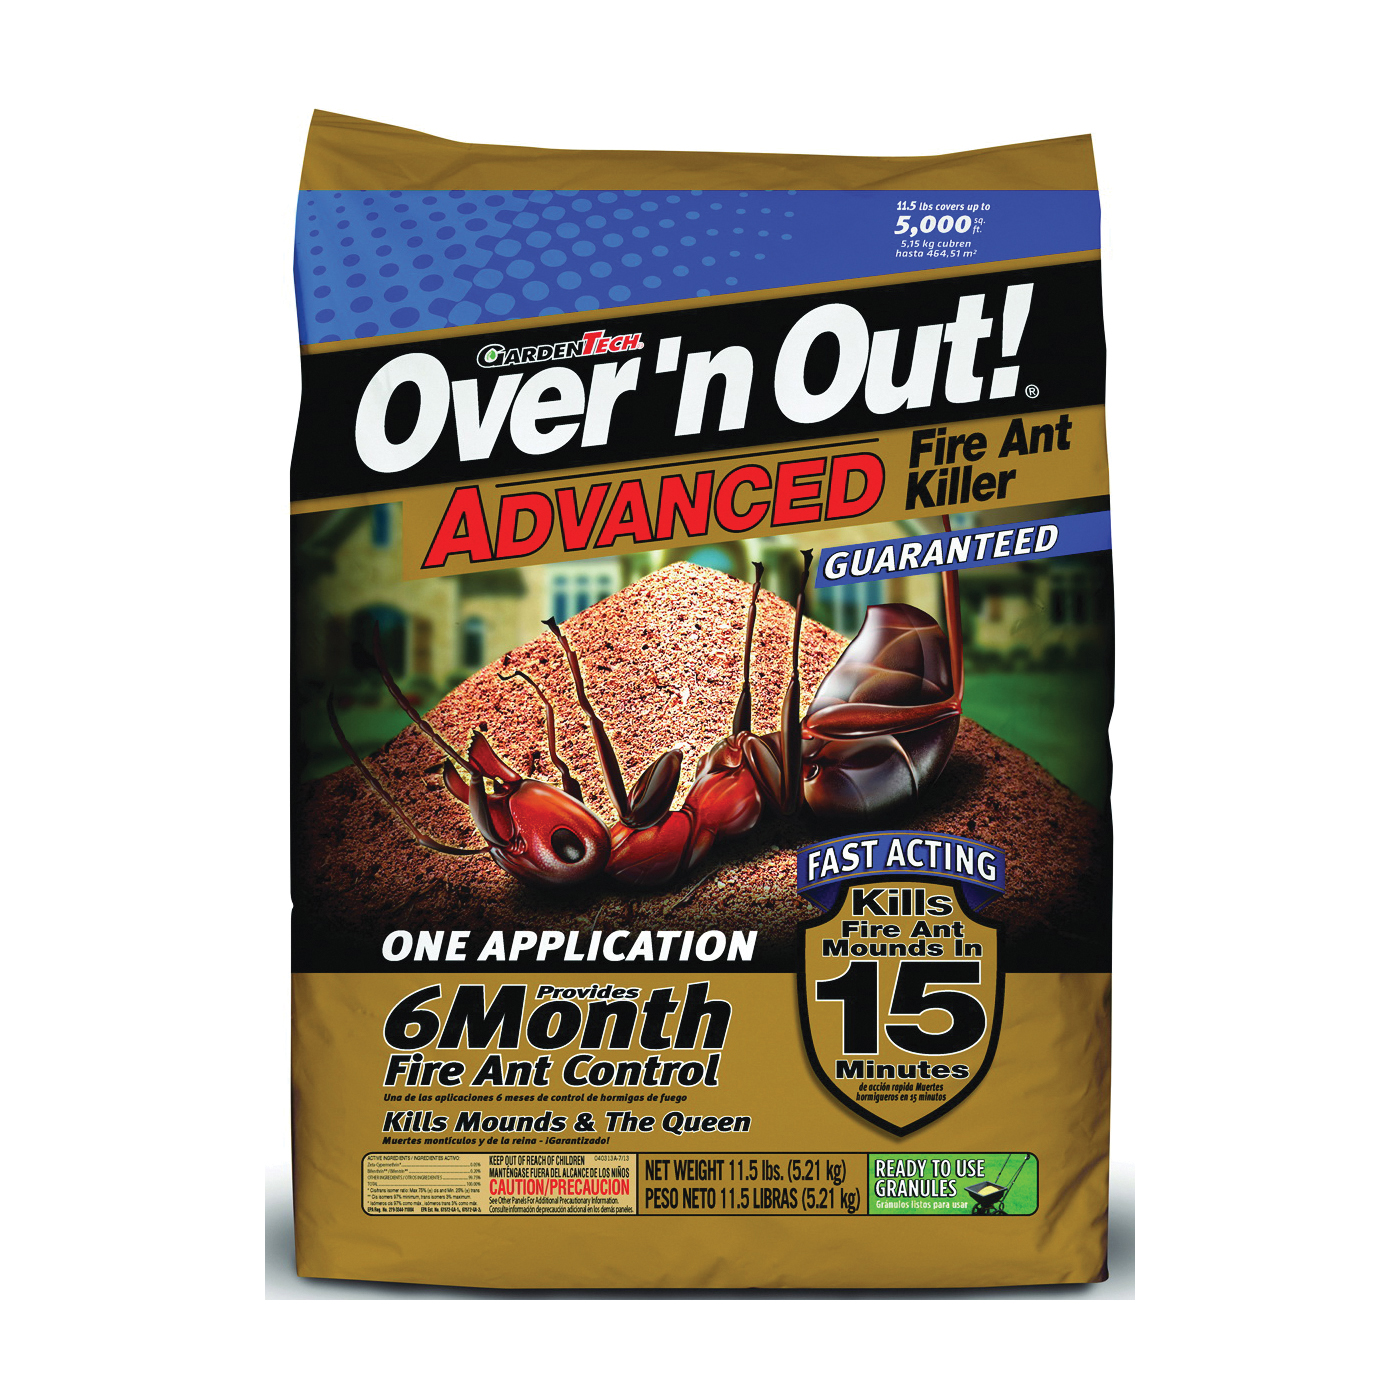 Over 'n Out 100522608